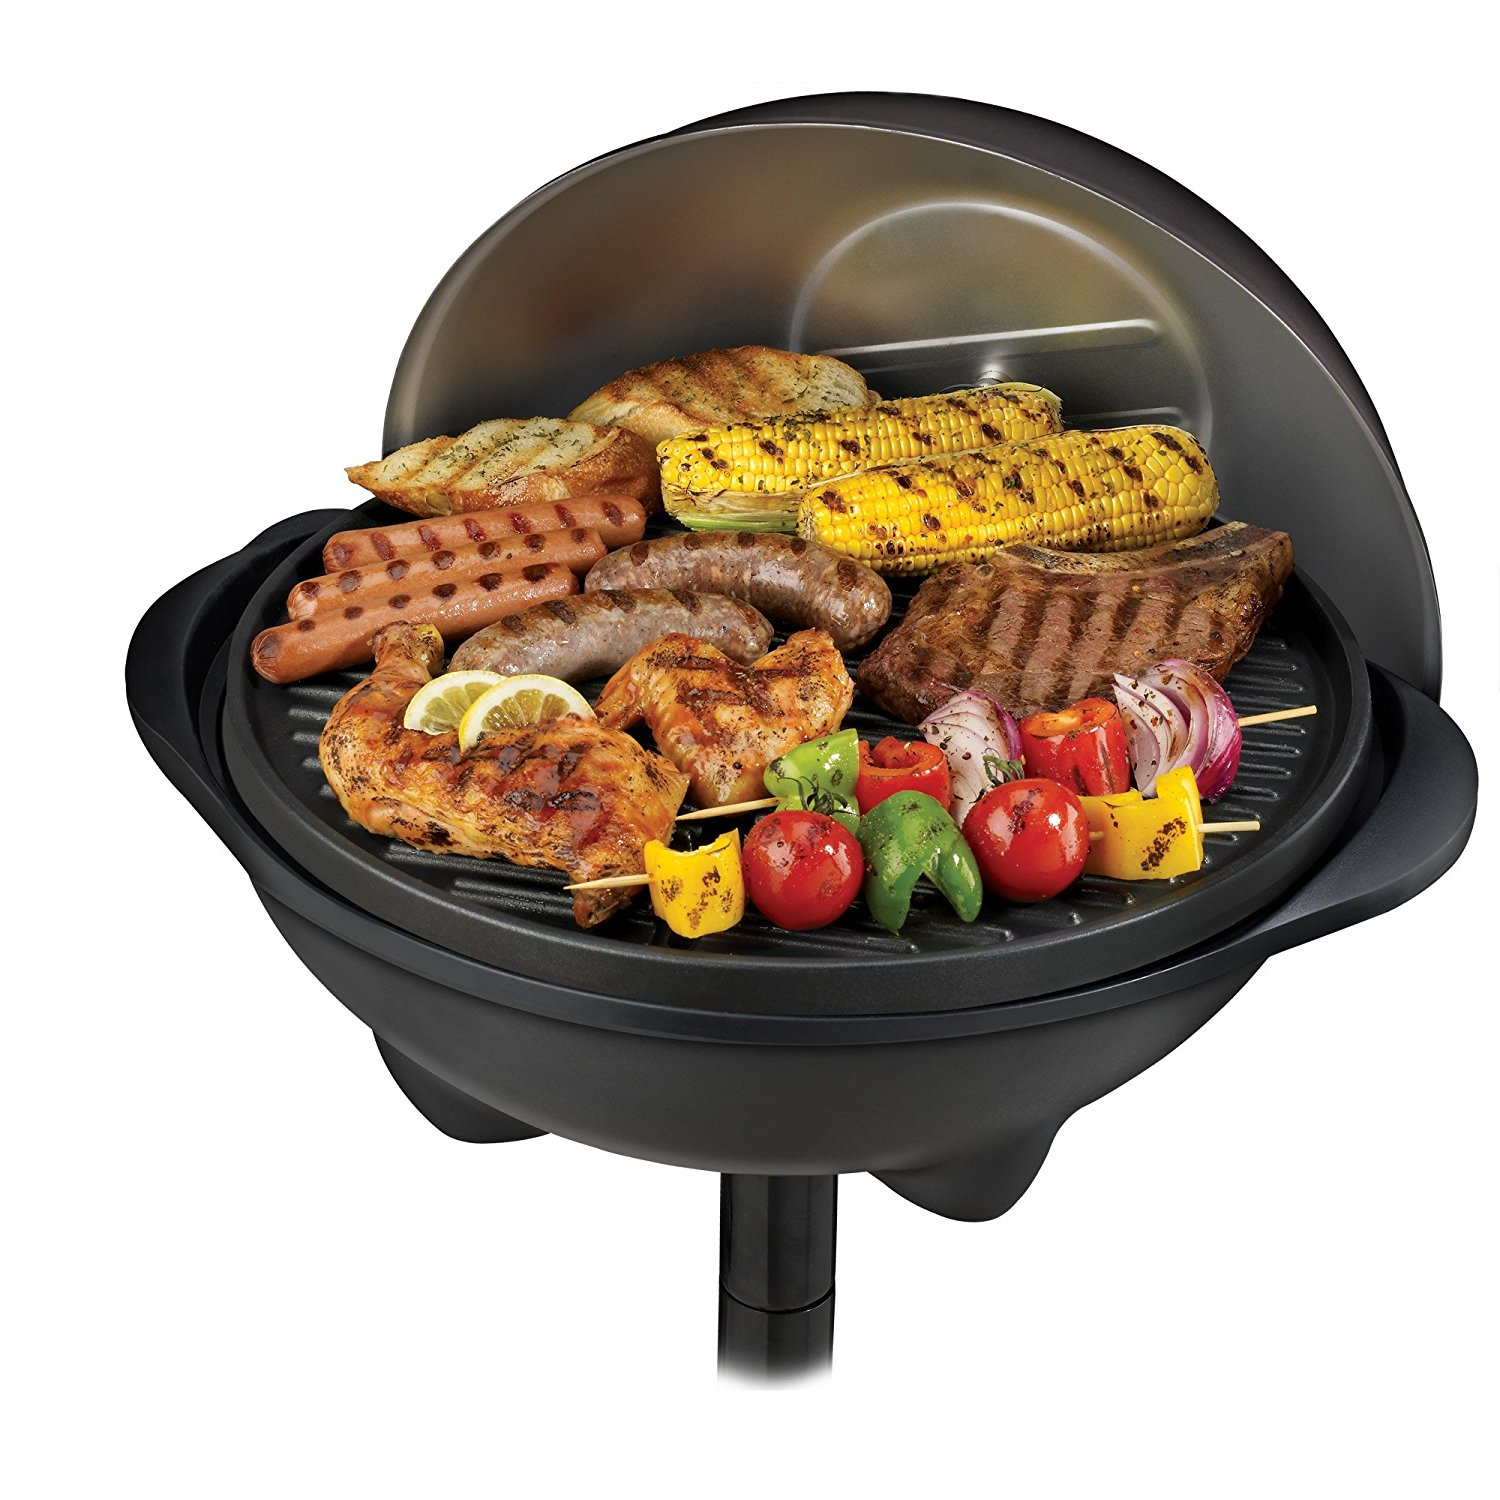 George Foreman Ggr50b Indoor Outdoor Grill Review - Grill Outdoor